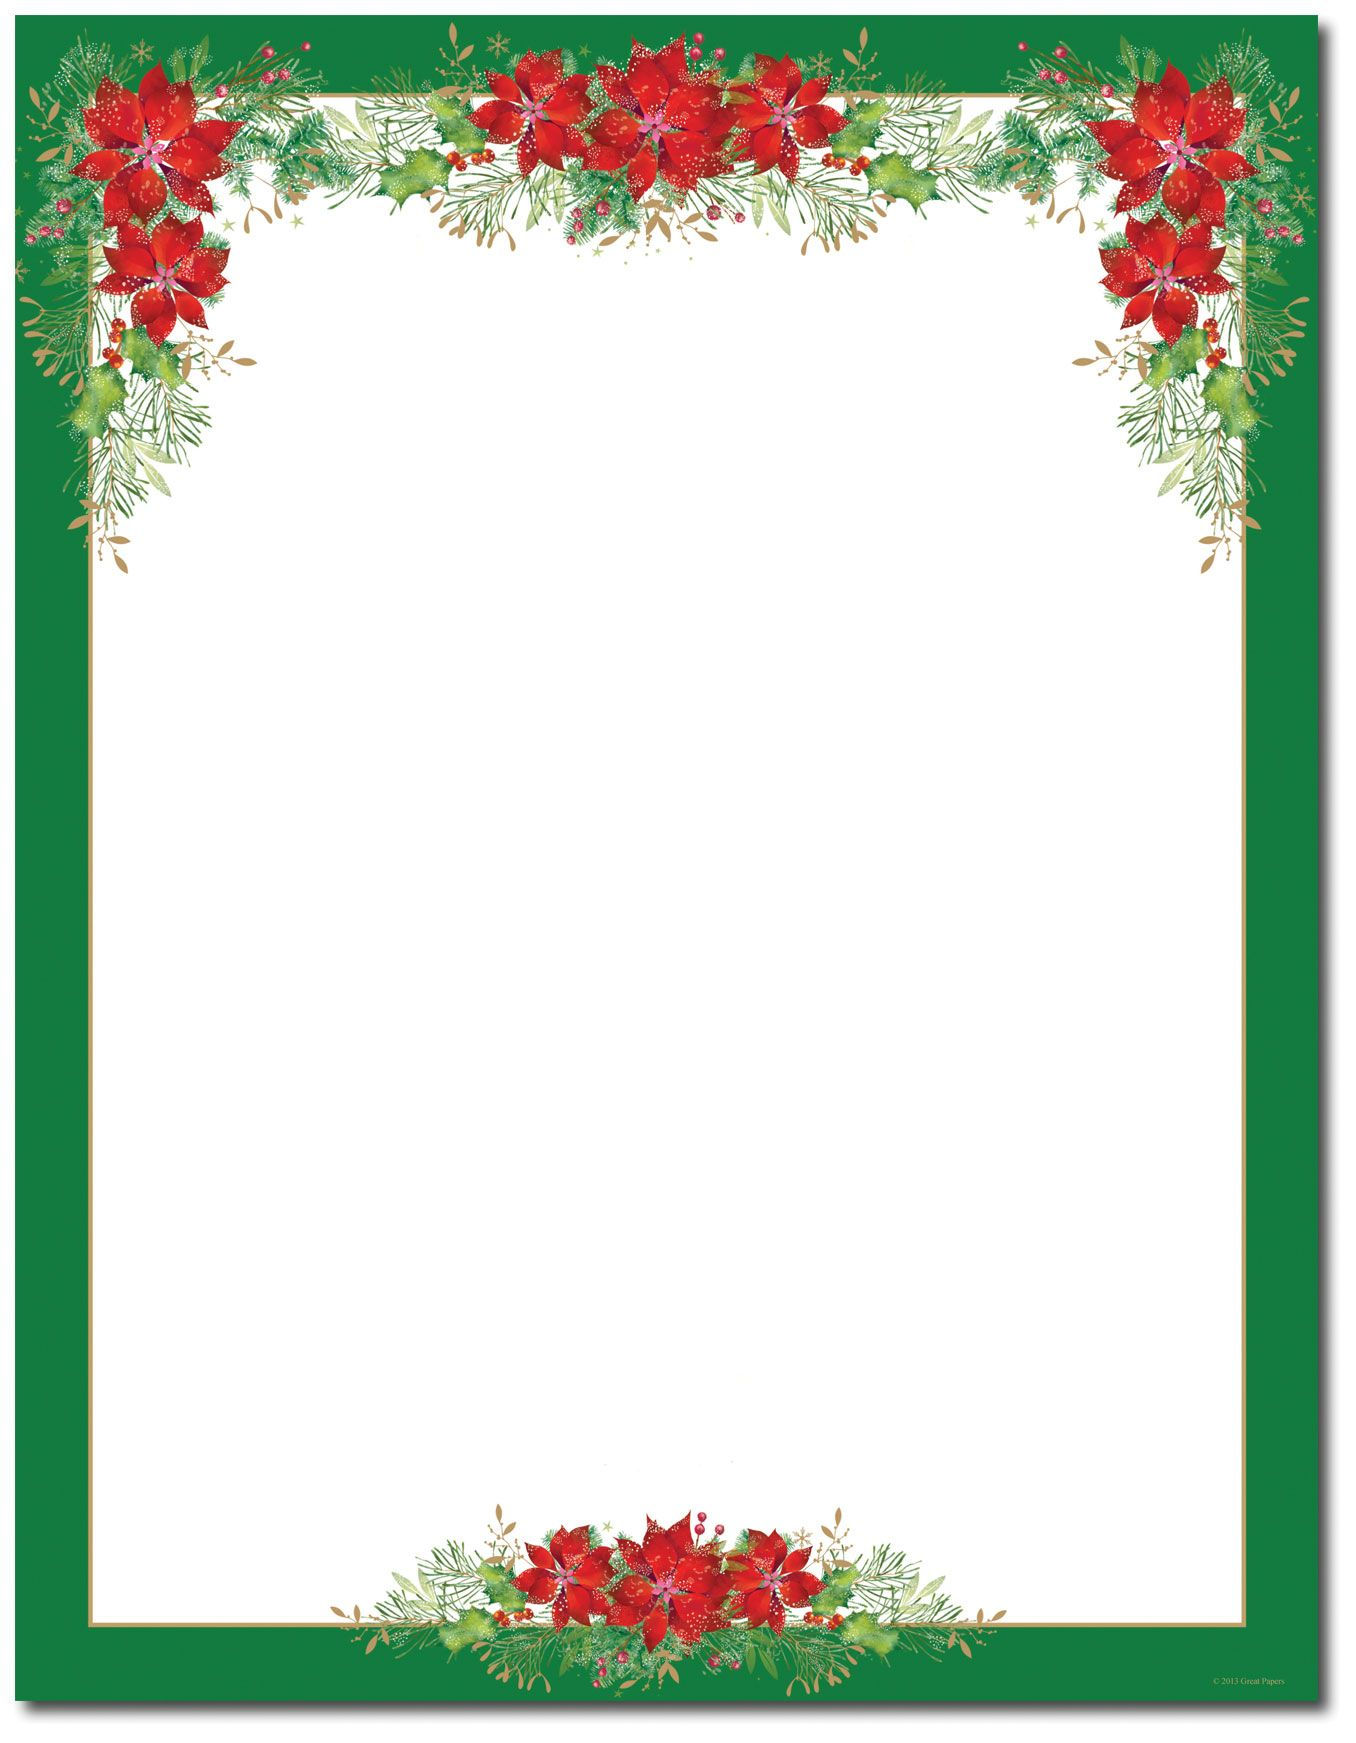 poinsettia valance letterhead holiday papers paper wide variety of christmas letterhead stationery computer paper to choose from styles include religious snowman candy cane christmas trees and more